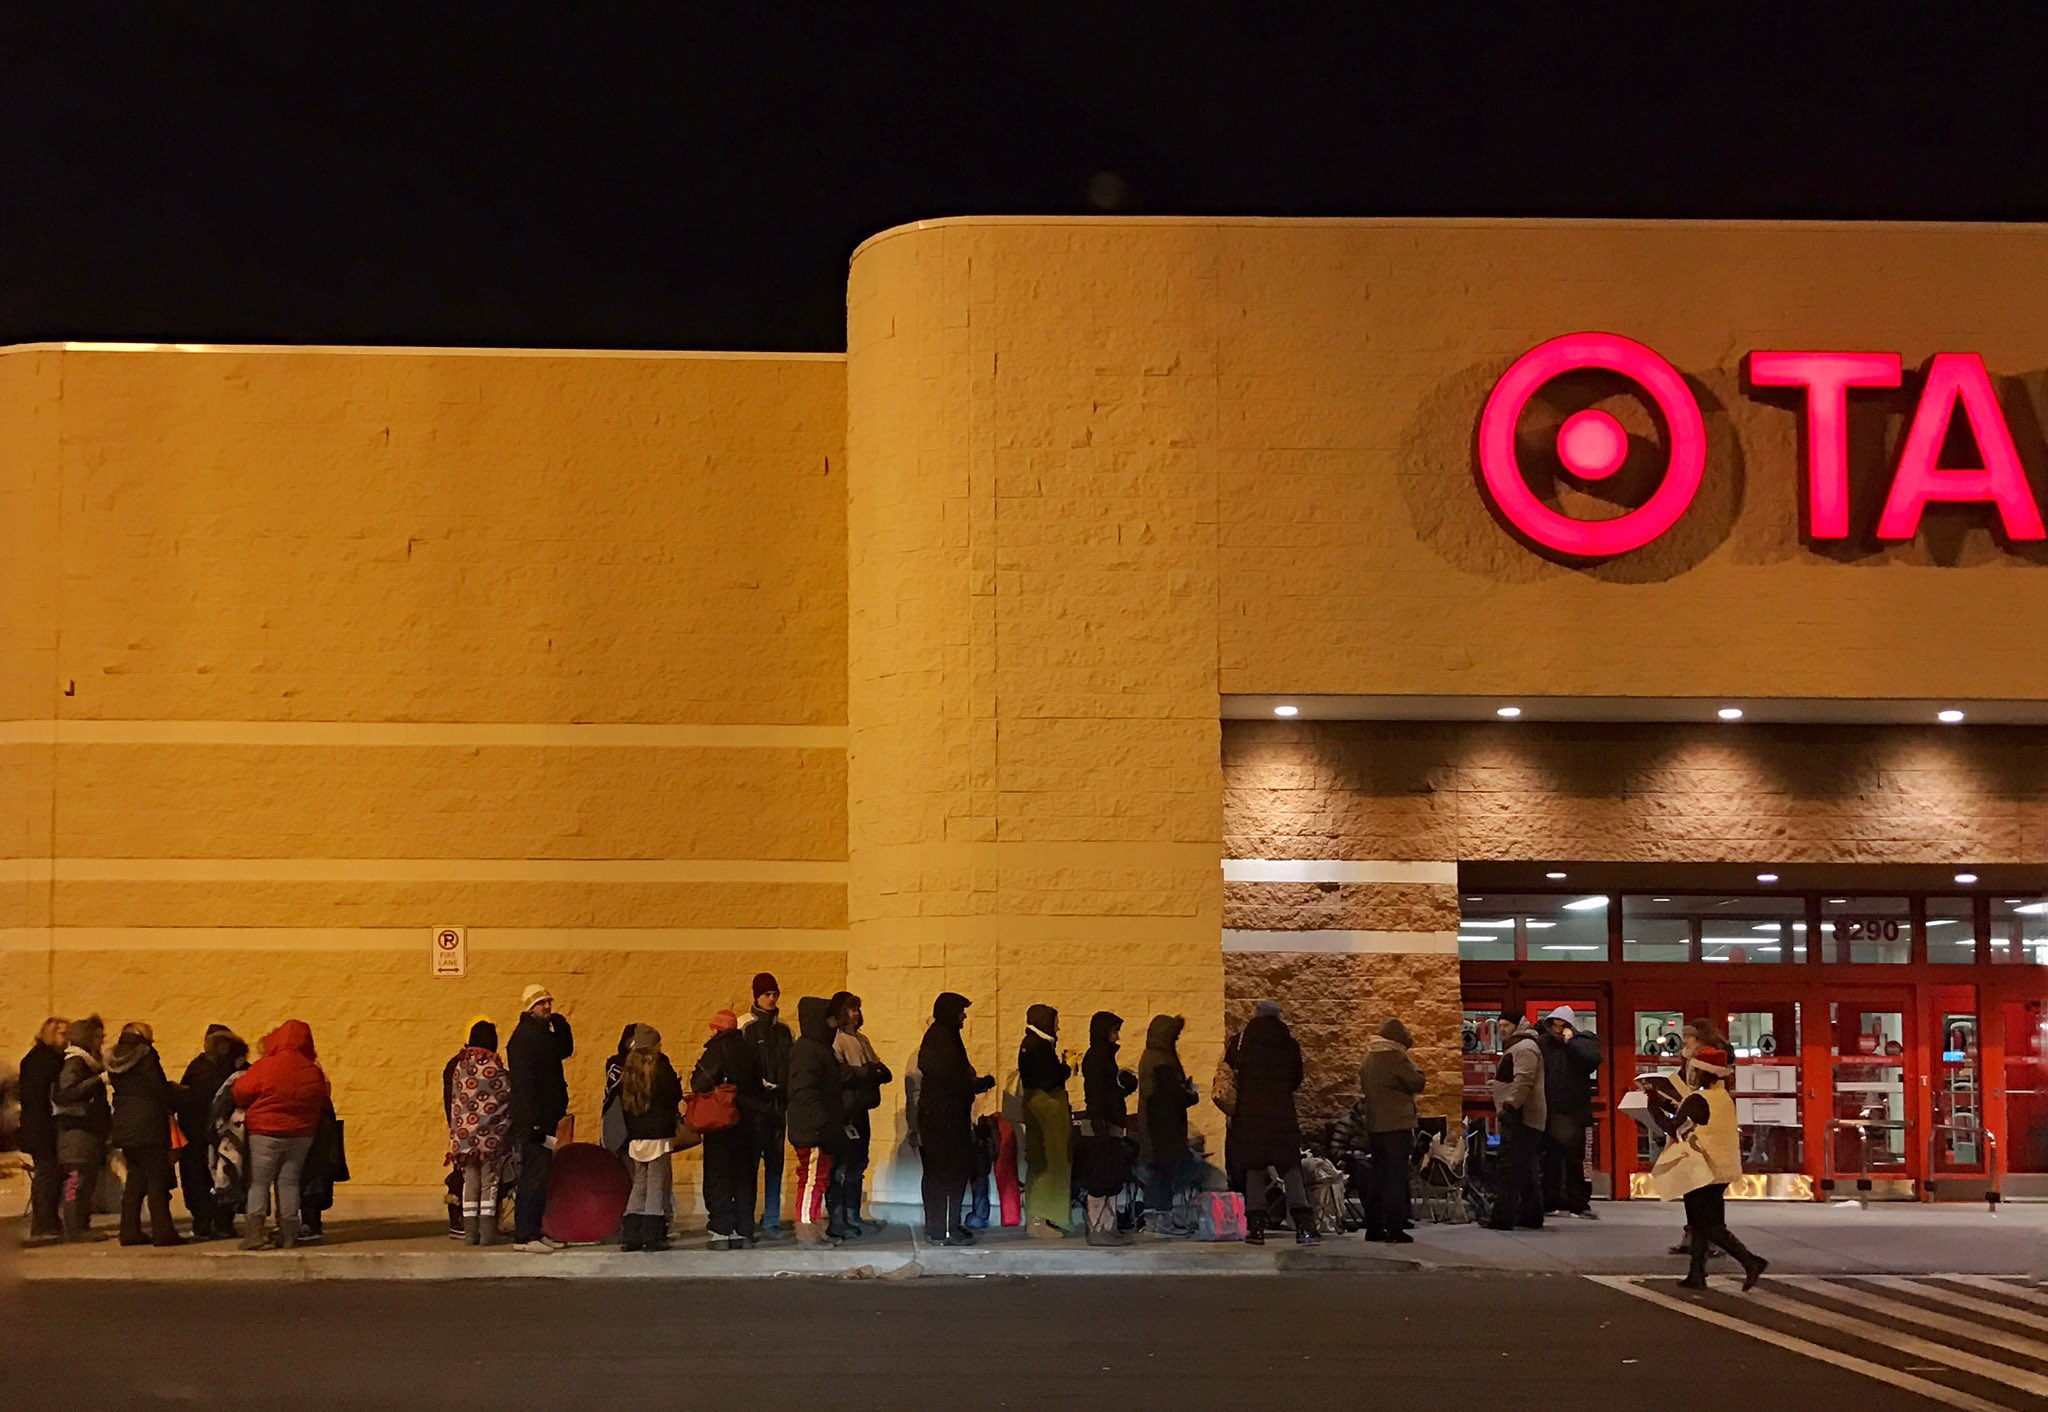 Waiting to catch a Hatchimal, customers lined up early at the Target on Transit Road in Amherst on a cold 24 degree morning Dec. 11. (Cathaleen Curtiss/Buffalo News)